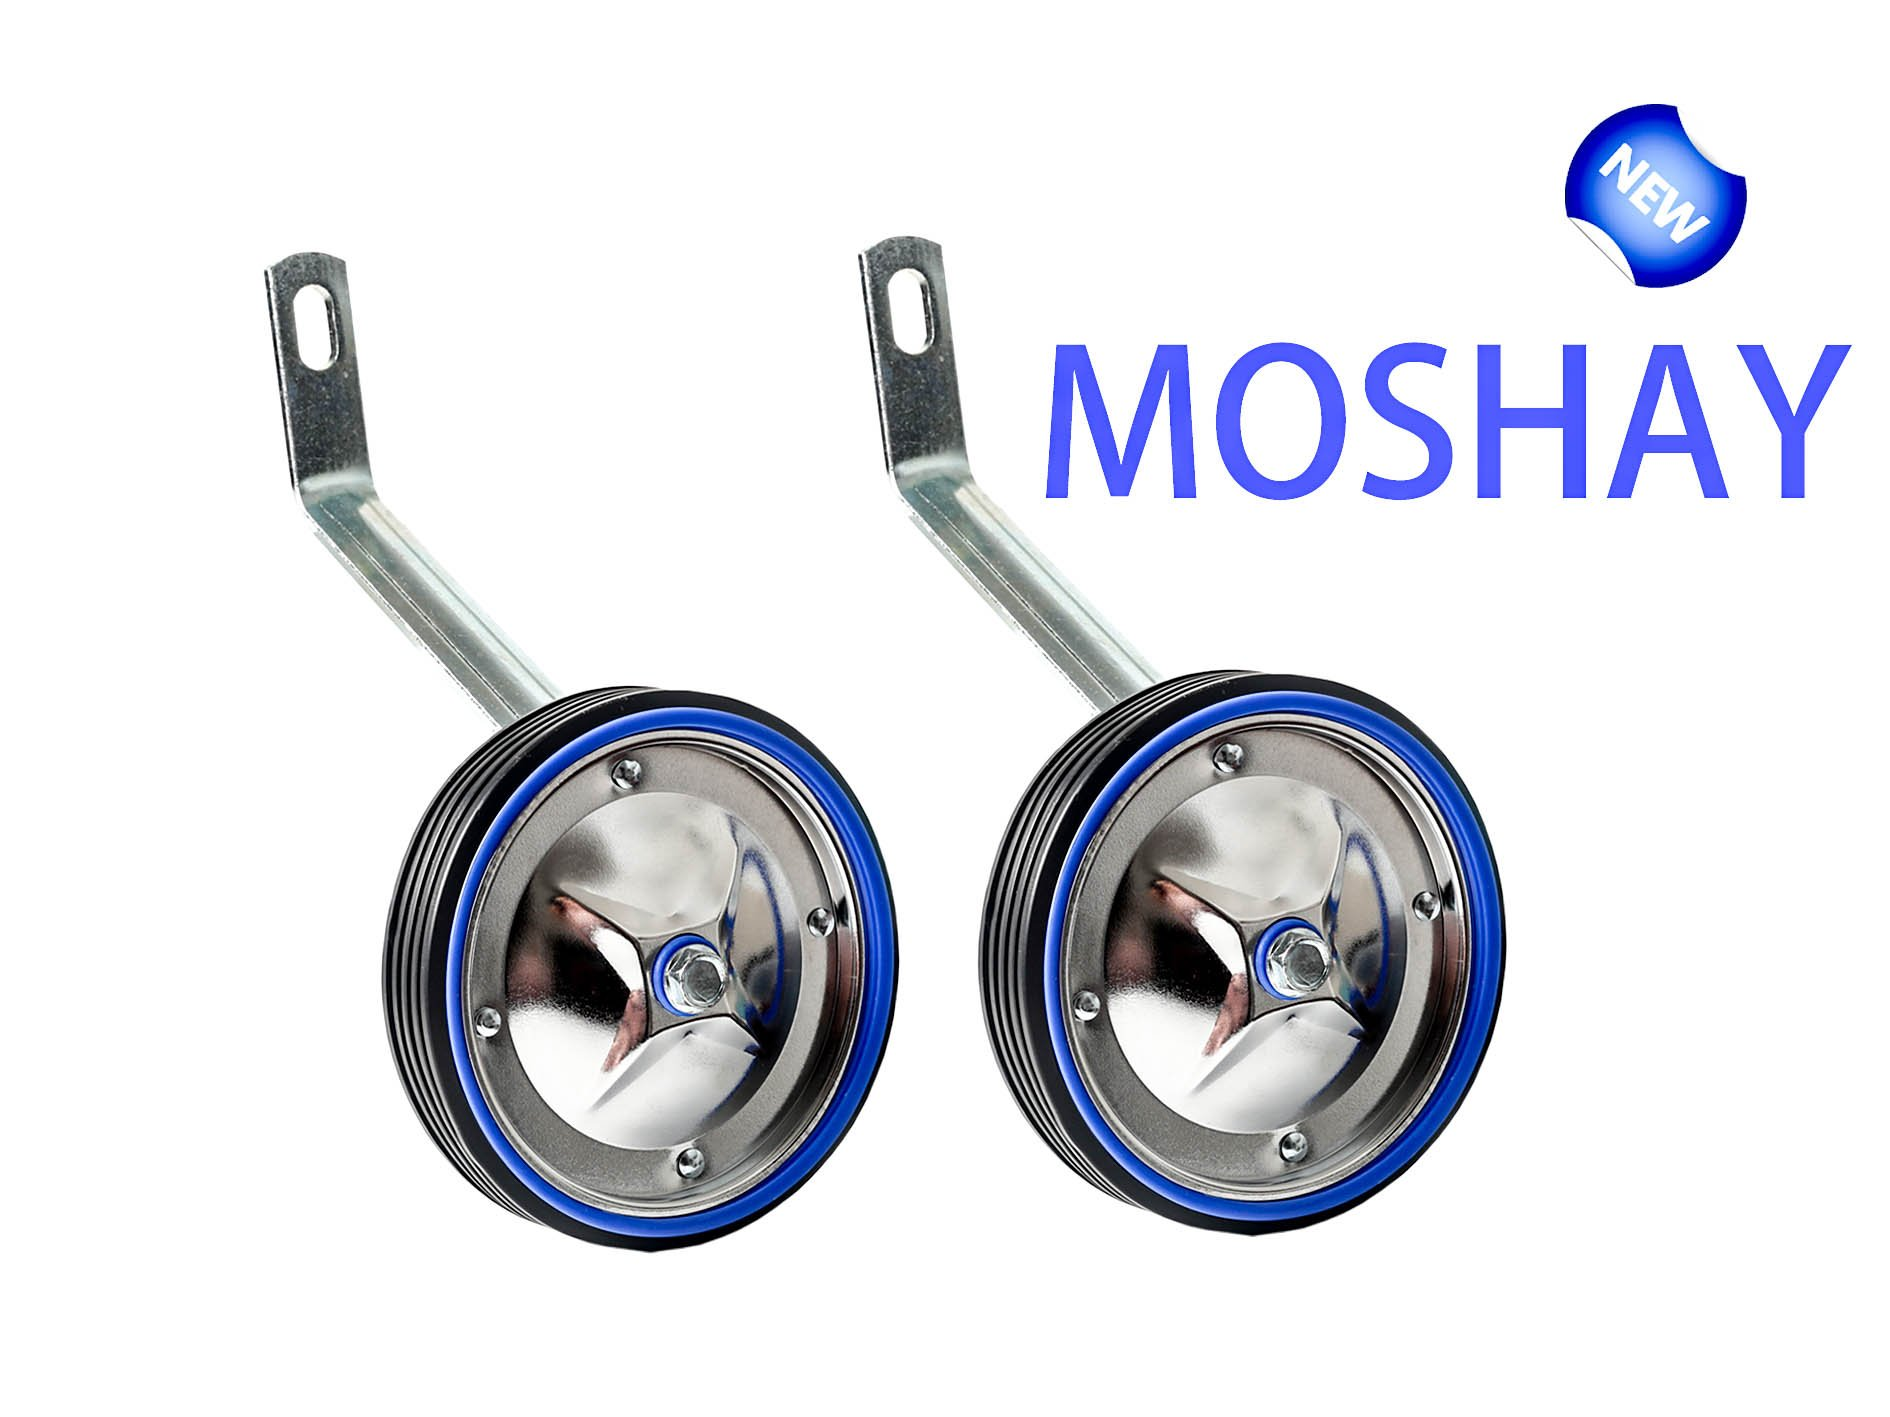 MOSHAY NOCTILUCENT BIKE TRAINER STABILISER SET 16 18 20 22 24Inch TRAINING WHEELS (A-green (BLUE)